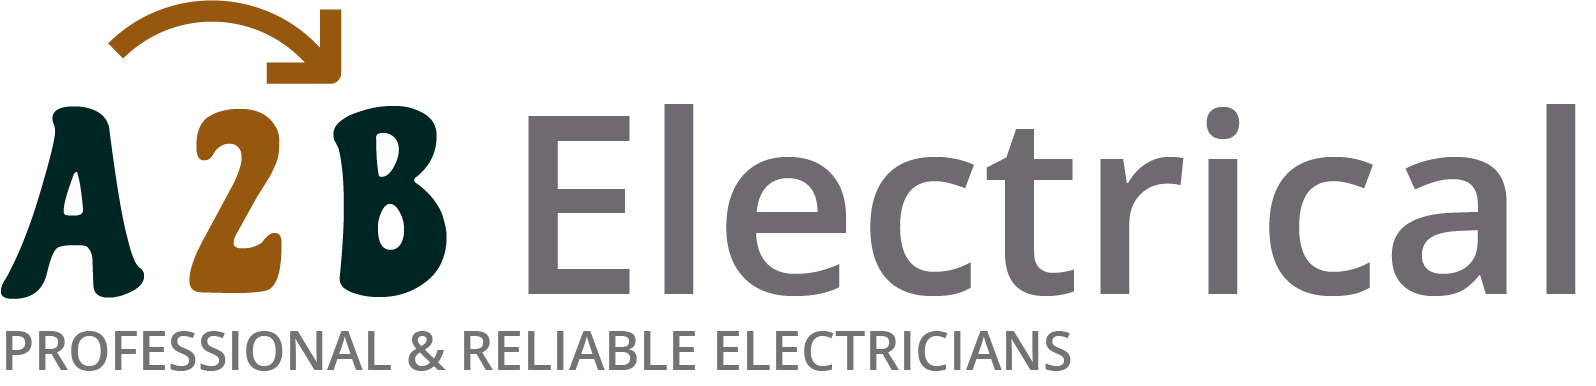 If you have electrical wiring problems in Herne Hill, we can provide an electrician to have a look for you.